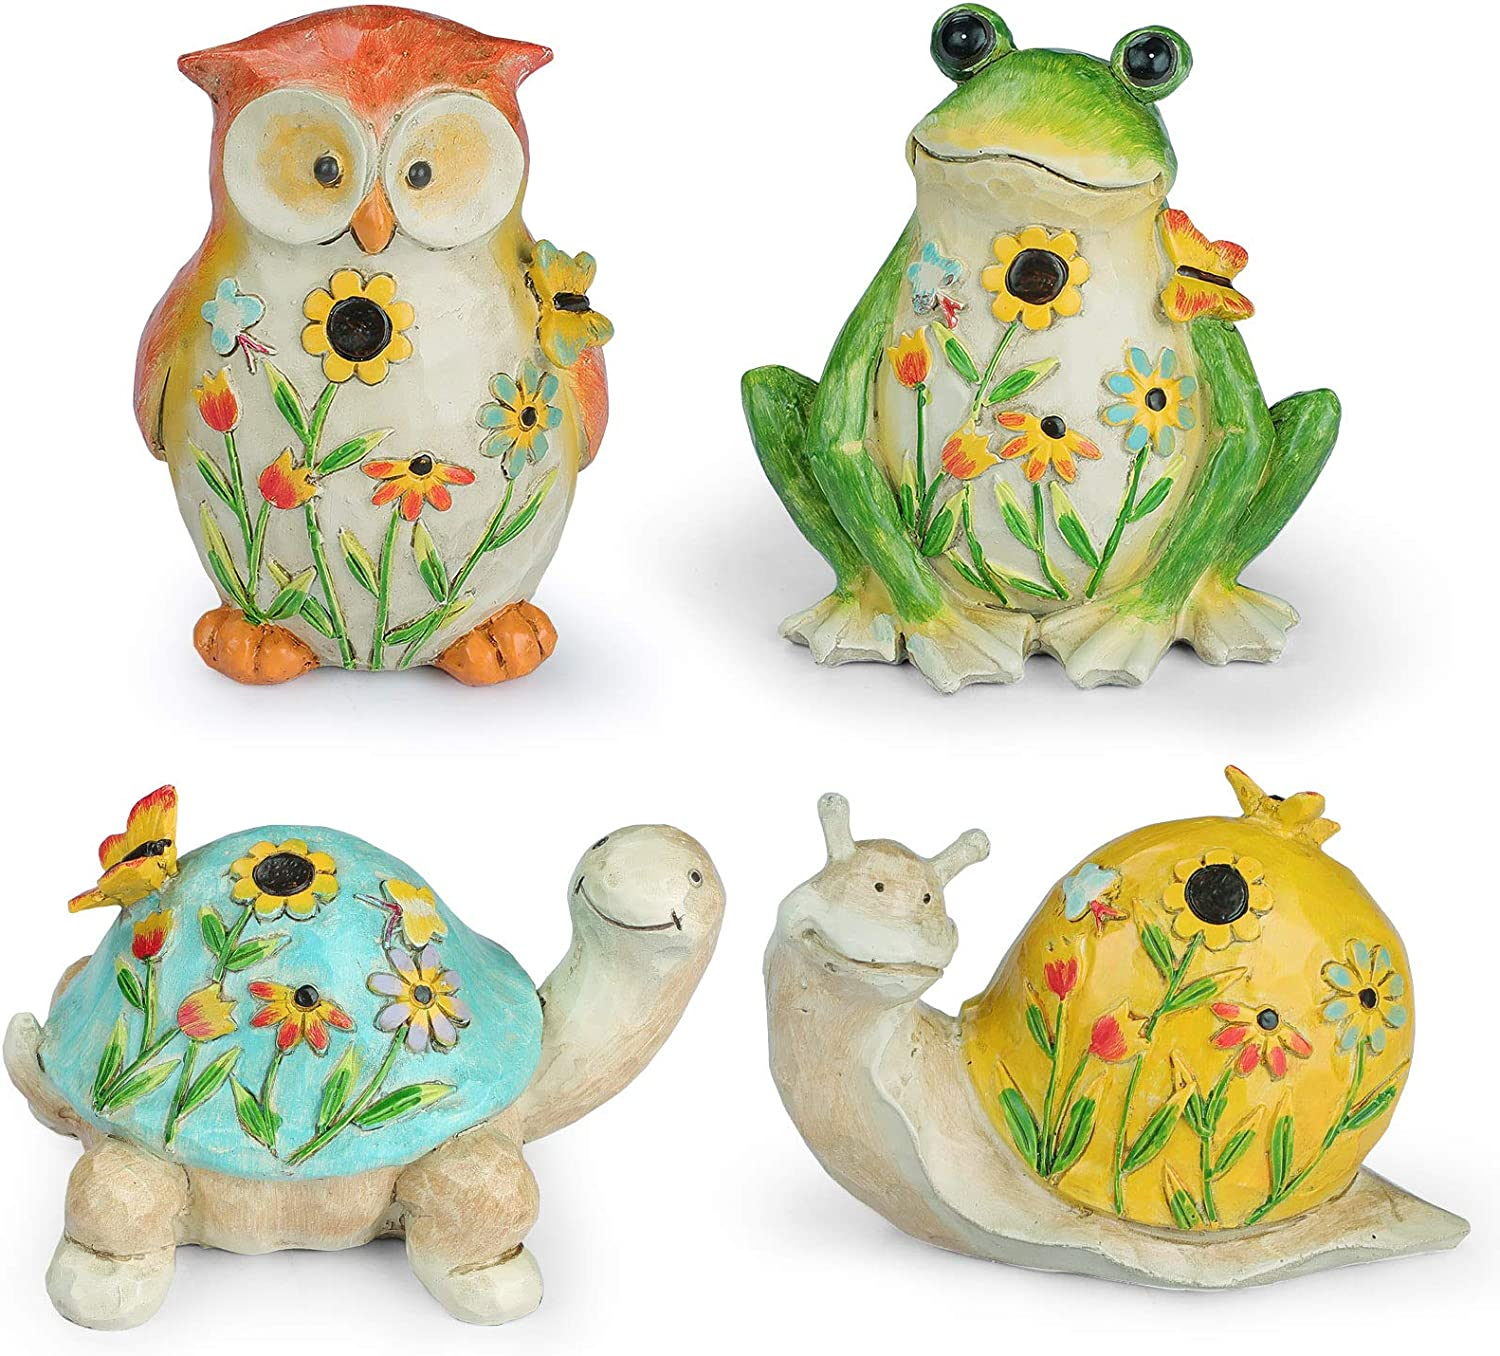 Garden Animal Figurines with Flower and Butterfly Decorations Set of 4, Frog, Owl, Turtle & Snail Garden Statues, Resin Outdoor Spring Décor and Home Décor, 4.625